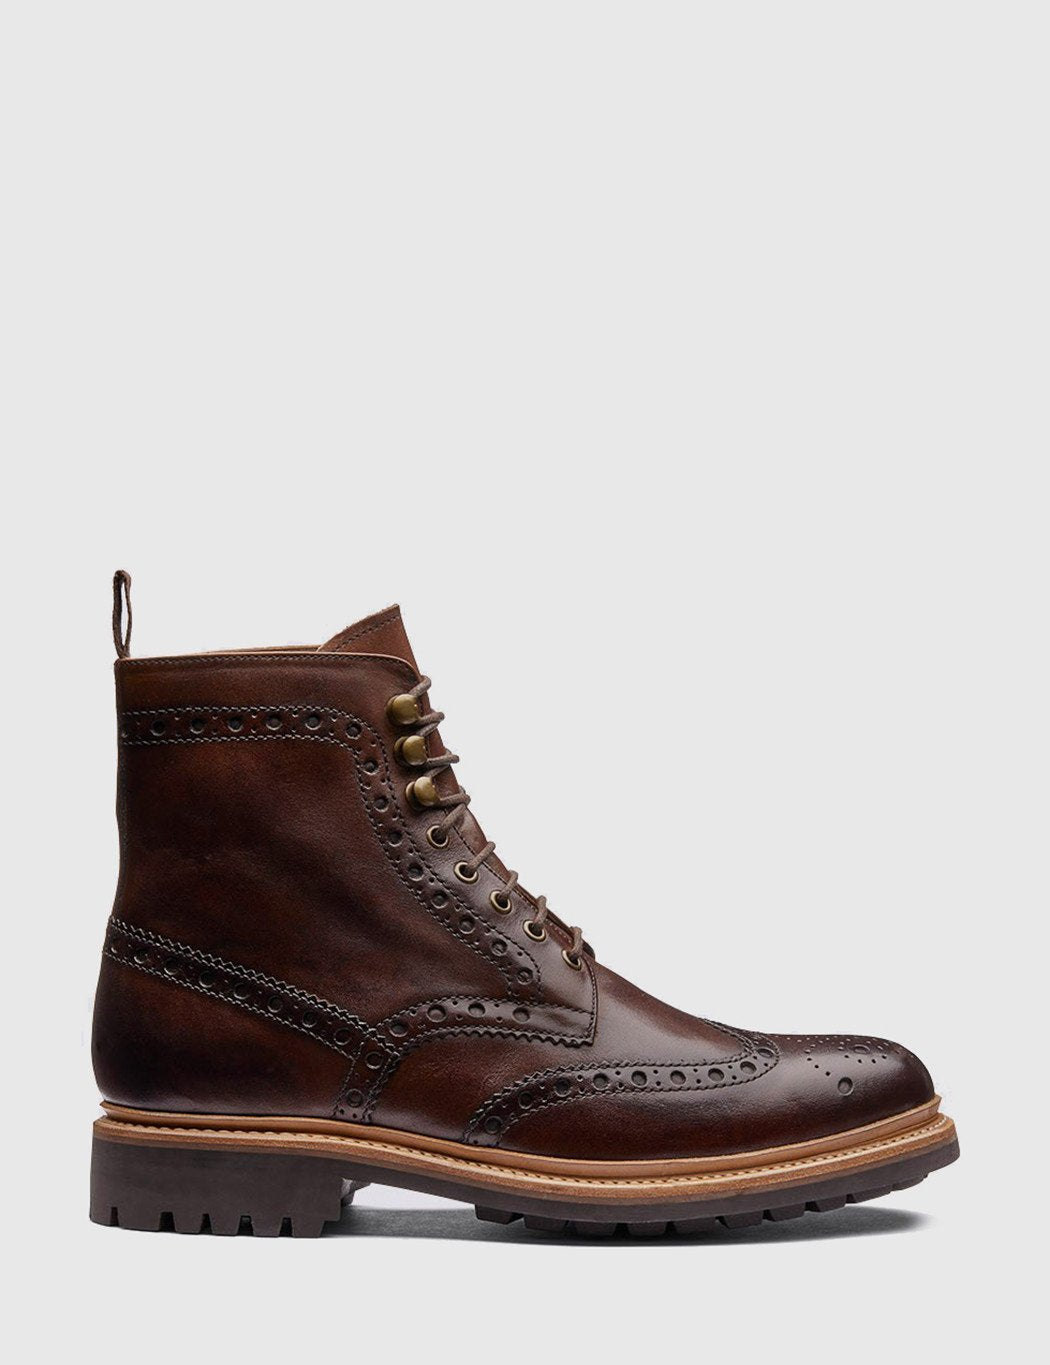 Grenson Fred Brogue Boot (Hand Painted) - Dark Brown